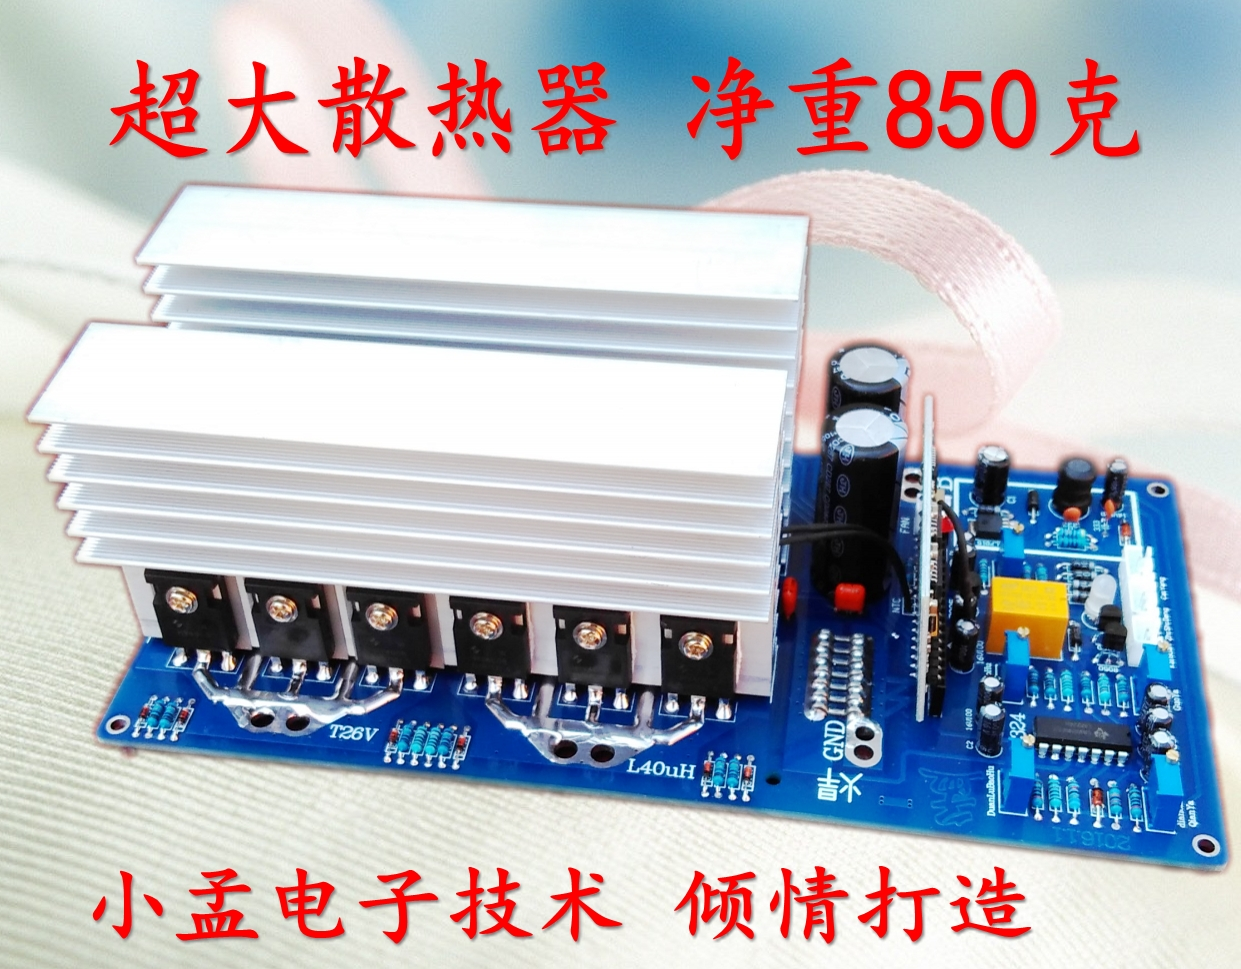 48V60V5KVA6KVA power frequency pure sine wave inverter plate drive plate, circuit board motherboard PCB motherboard high power 24 led strobe light fireman flashing police emergency warning fire flash car truck led light bar 12v dc